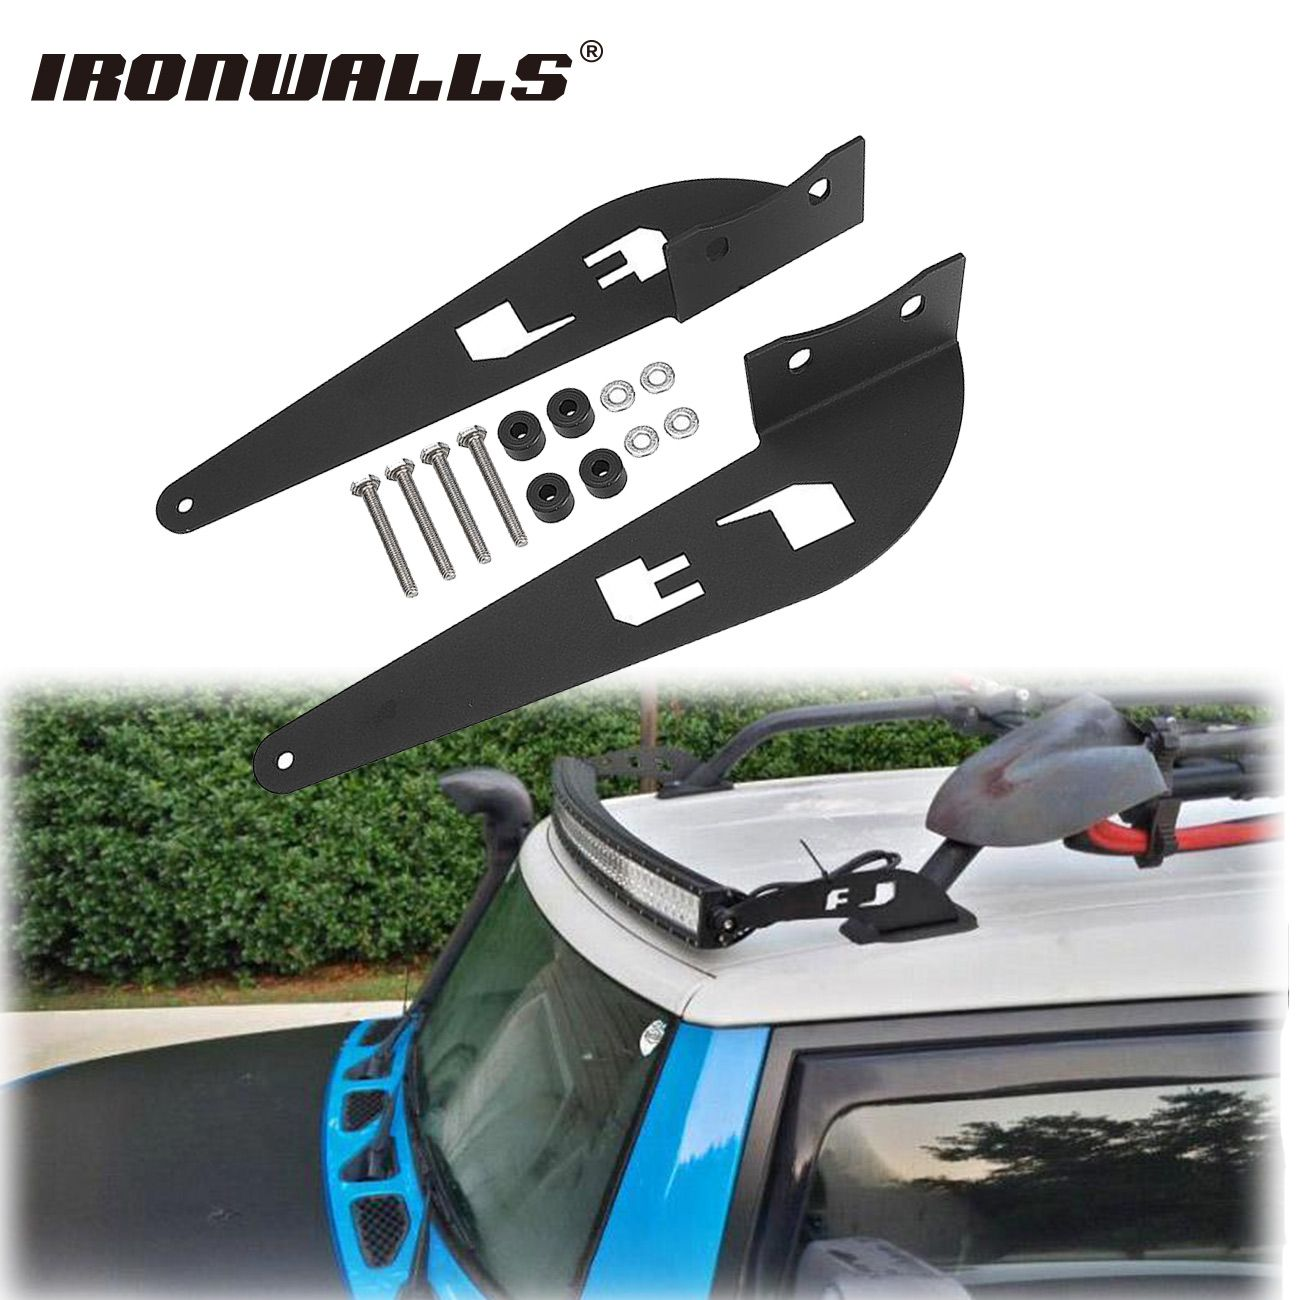 Ironwalls Pair 52inch Led Light Bar Mounting Brackets Mount Kit Car Offroad Straight Curved Base For Toyota Fj Cruiser R Toyota Fj Cruiser Fj Cruiser Roof Rack